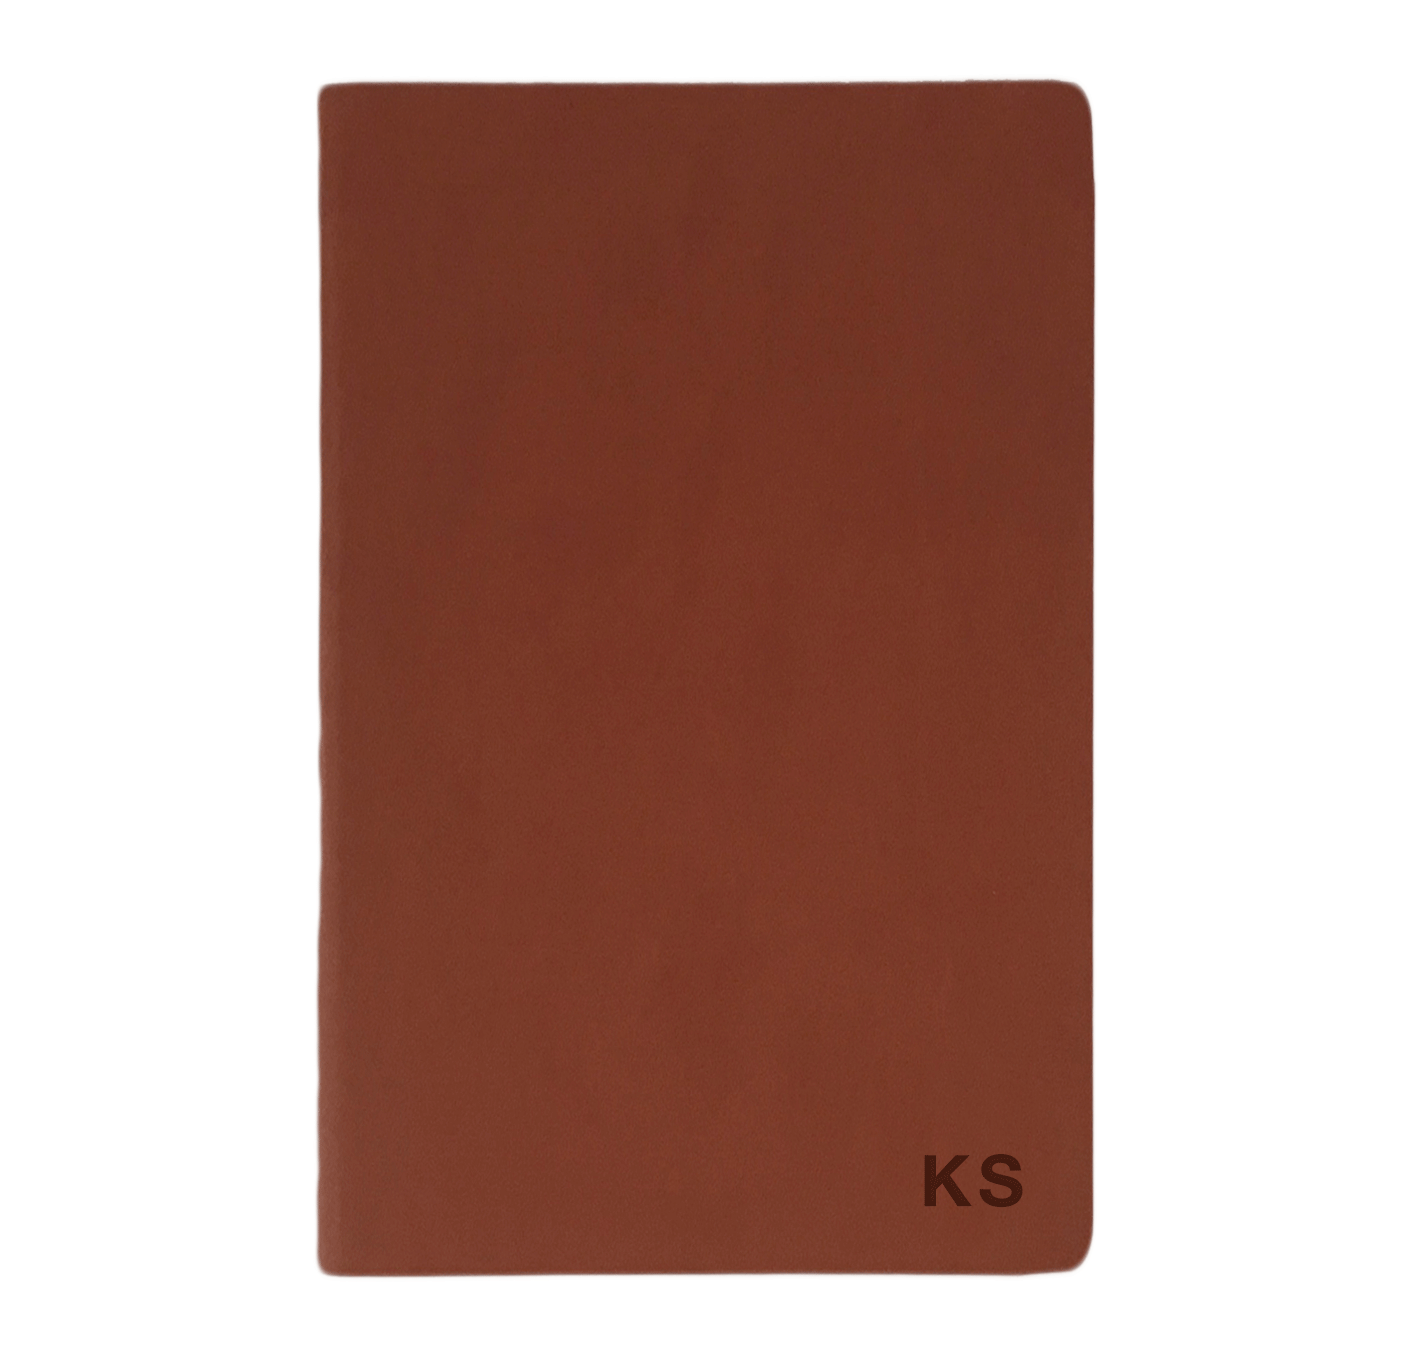 MALLE - The PAD Brown a5